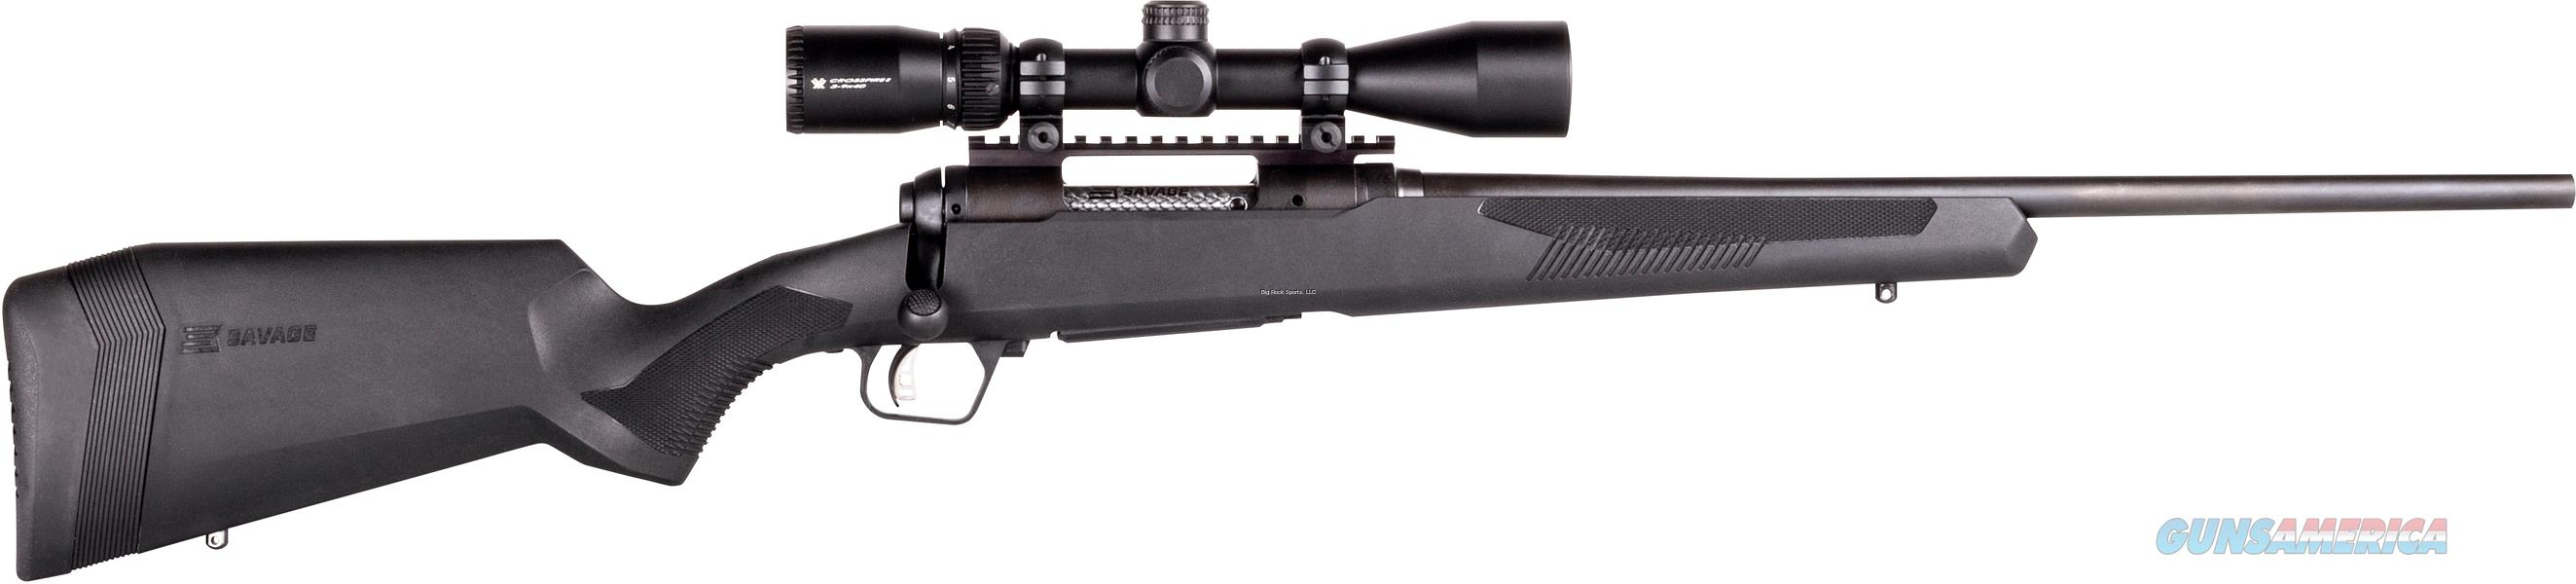 "Savage Arms 110 Apex Hunter Xp, Bolt Action Rifle, .243 Win, 22"" Bbl, Blk Syn Stock, Adjust Lop, Accu-Trig, Vortex 3-9X40 Scope 57303  Guns > Rifles > S Misc Rifles"